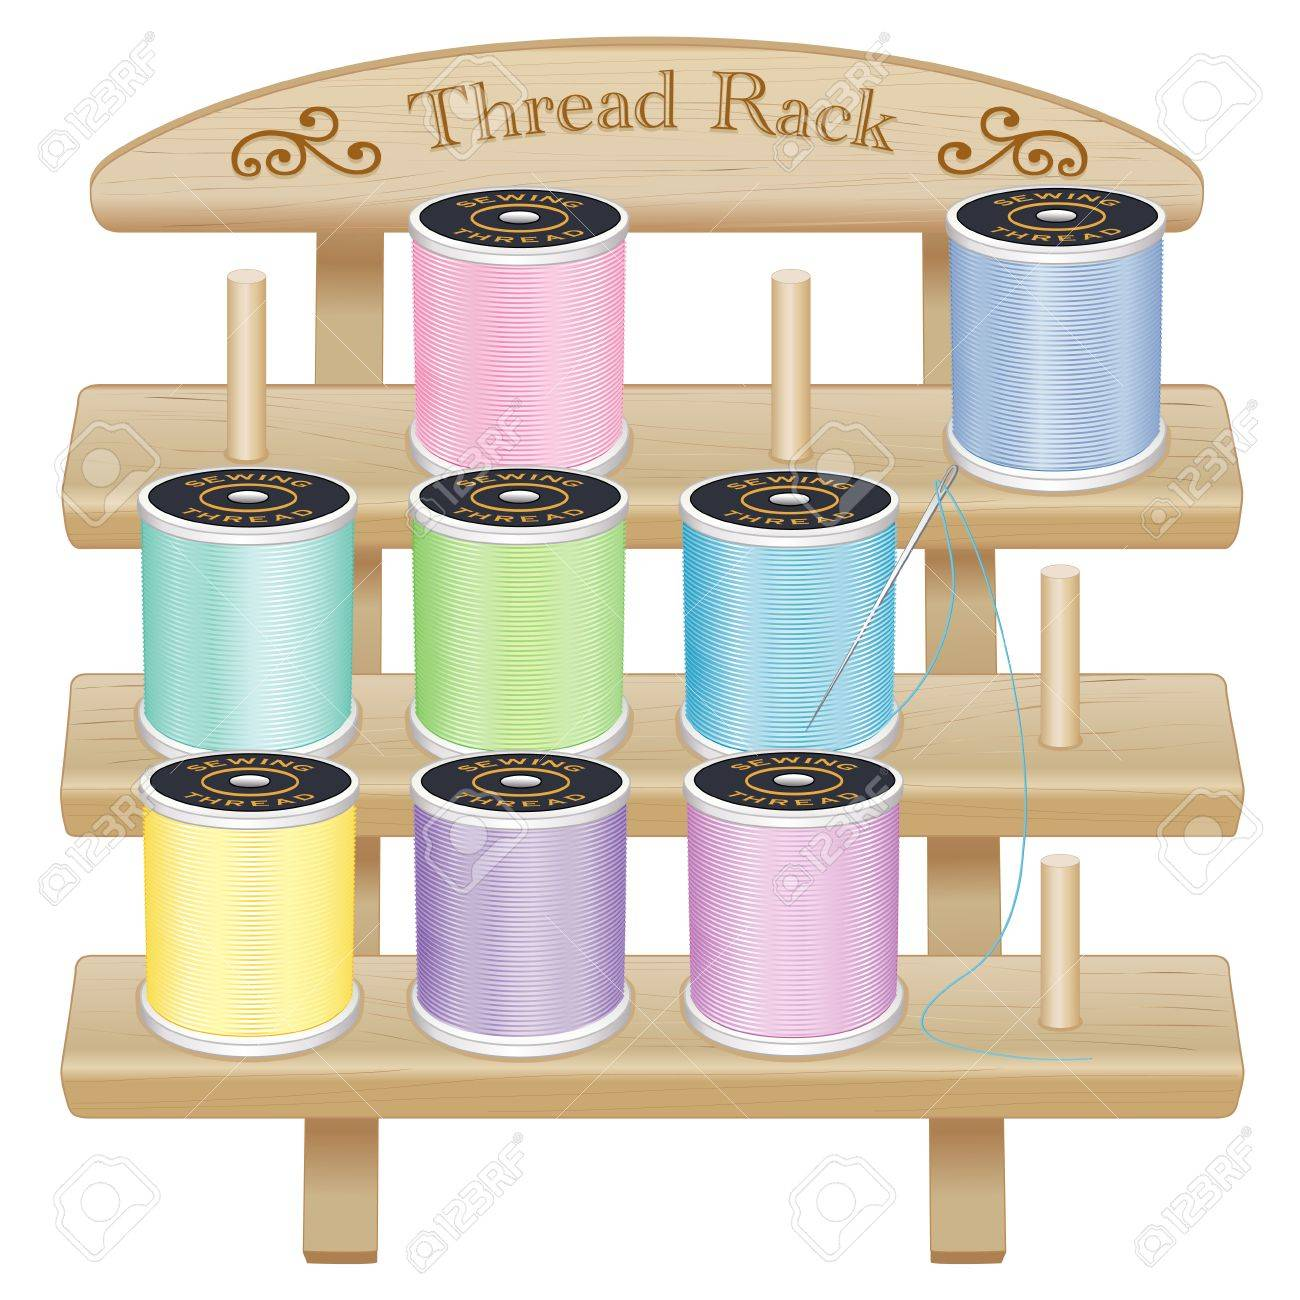 Vector - Wood Thread Spool Storage Rack engraved text and scrolls three pine shelves with pegs silver needle pastel threads for sewing tailoring ...  sc 1 st  123RF.com & Wood Thread Spool Storage Rack Engraved Text And Scrolls Three ...